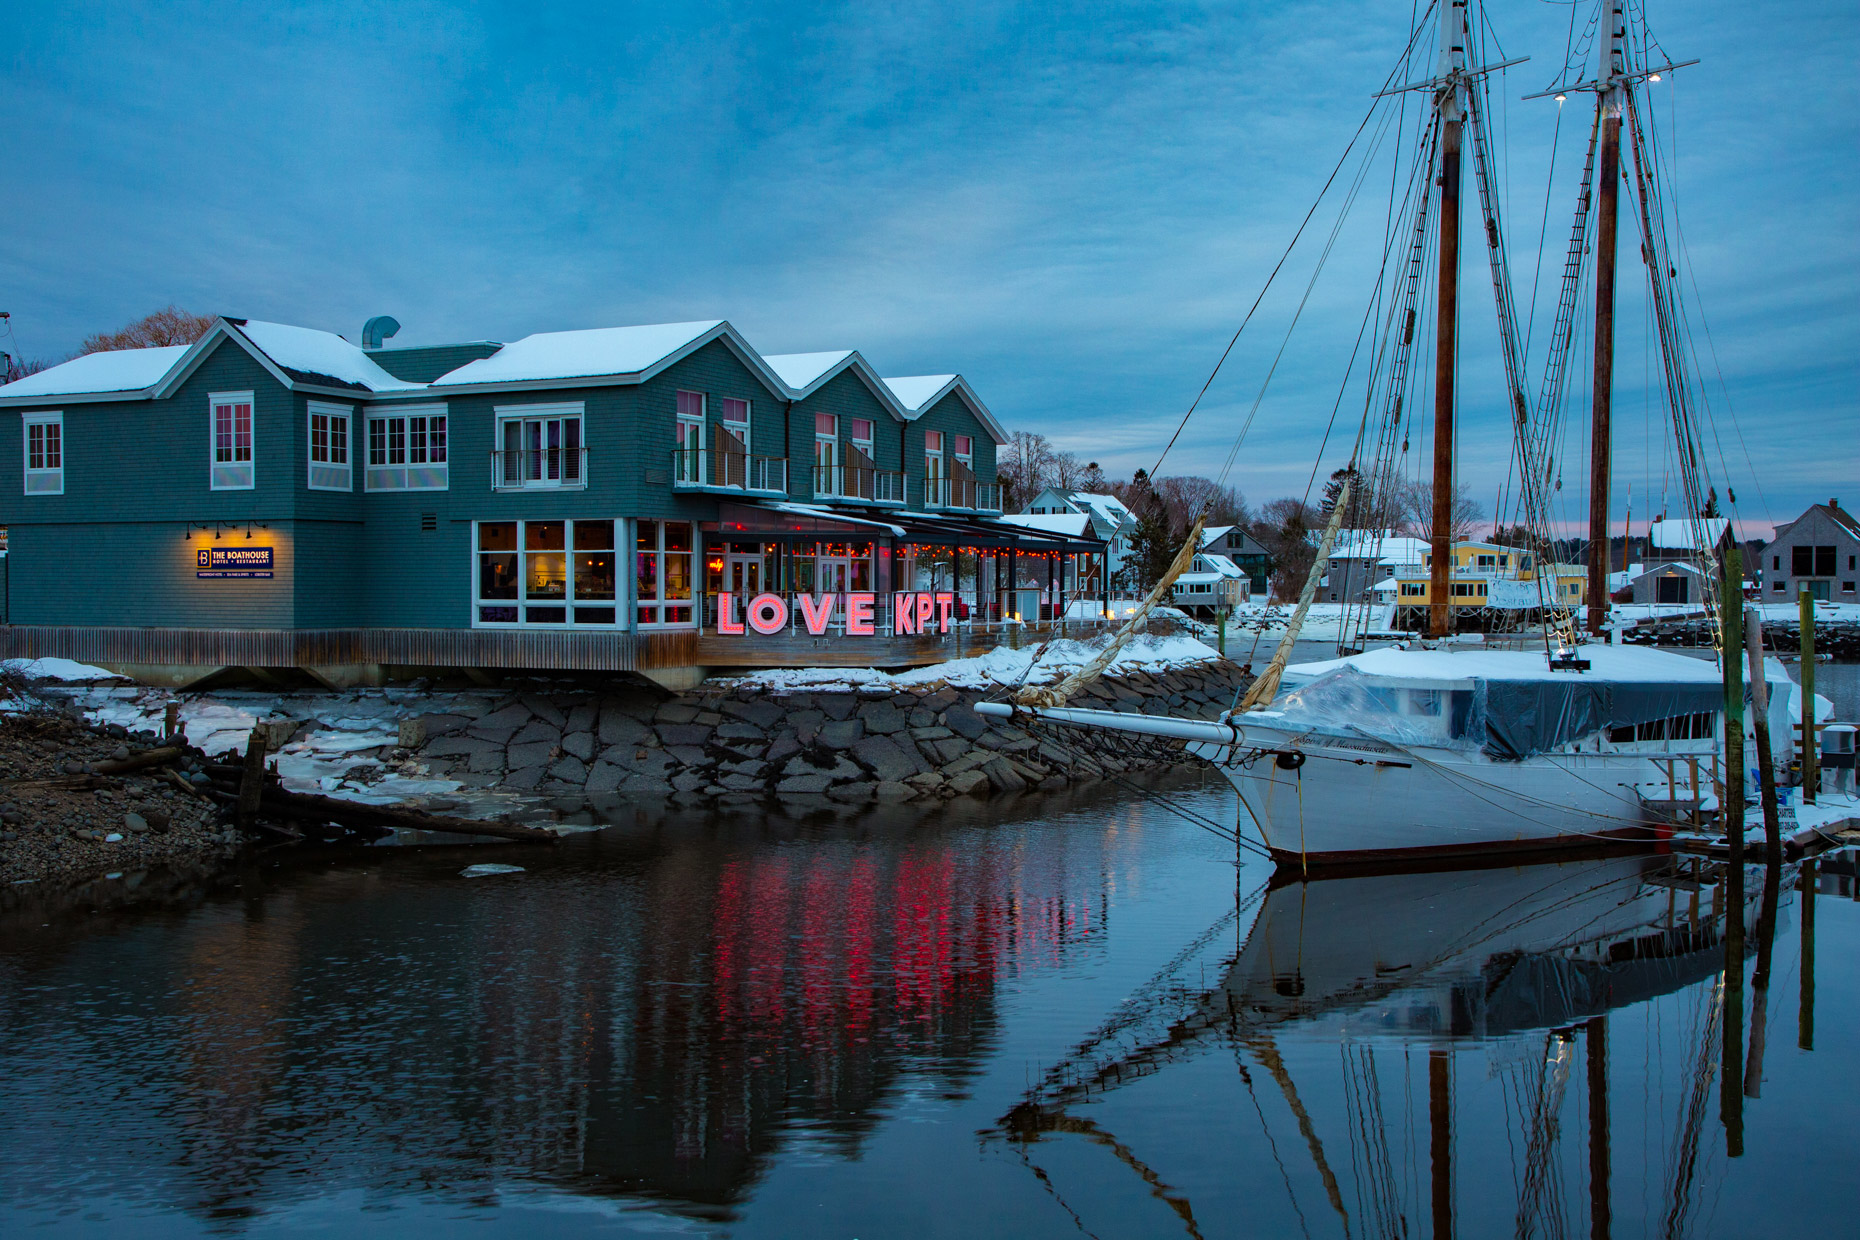 The-Boathouse-Restaurant-Kennebunk-River-Kennebunkport-Caryn-B-Davis